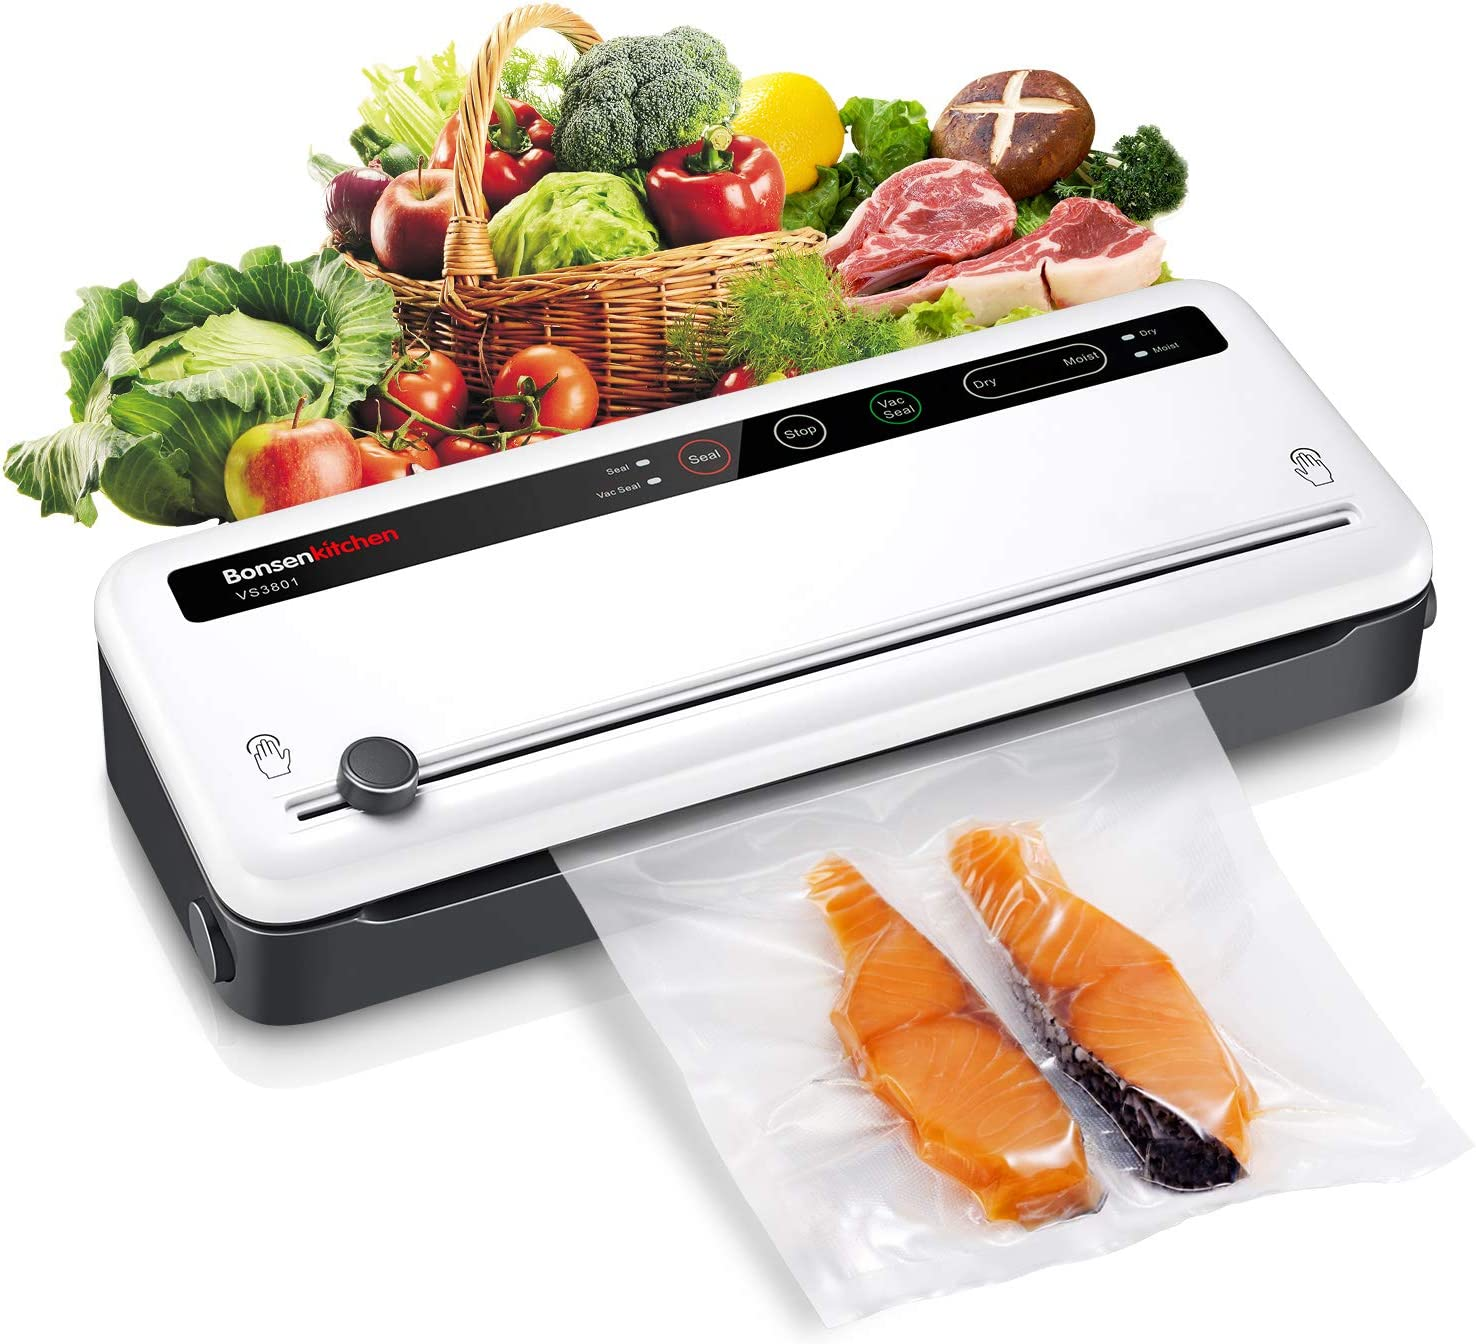 Upgrade Automatic Food Saver Vacuum Sealer Machines, Sous Vide Food Vacuum Packing Machines, Food Sealing Preservation For Home, Kitchen, Meat